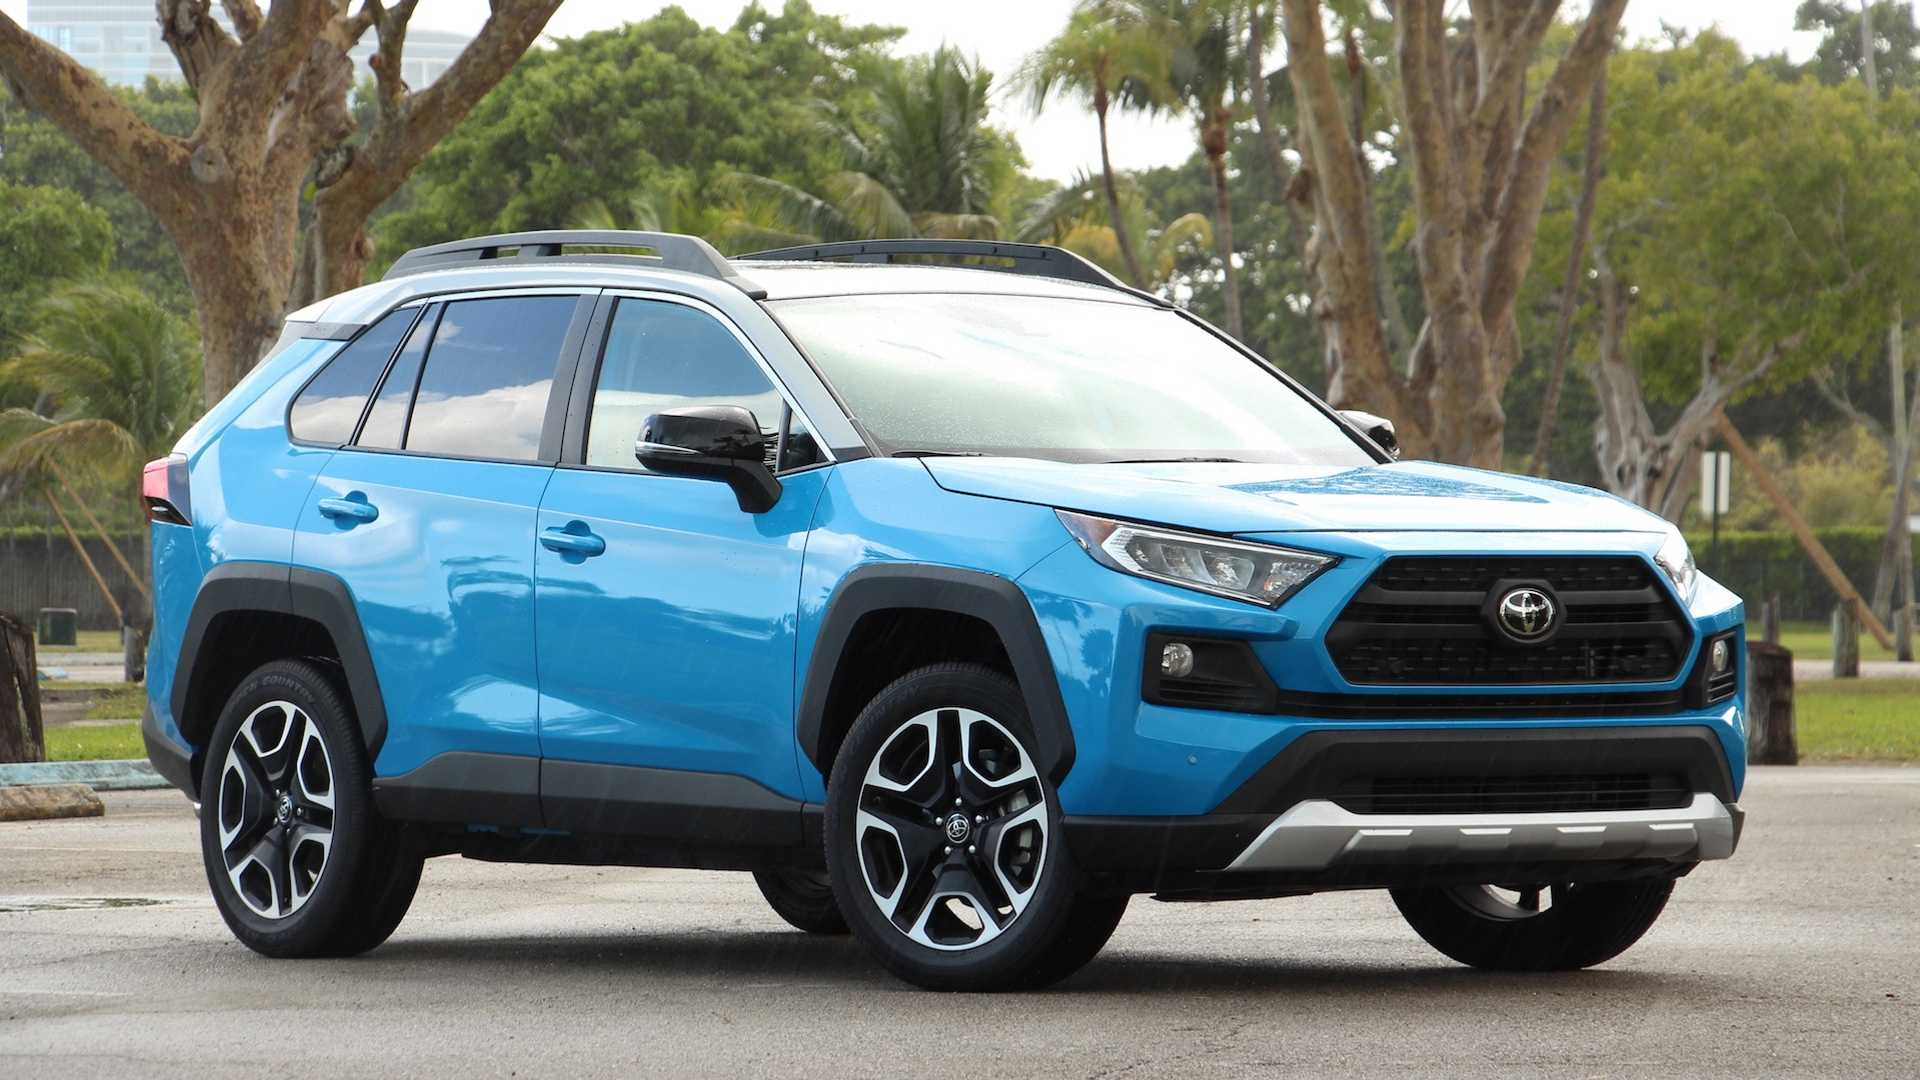 2019 Toyota Rav4 Adventure Pros And Cons